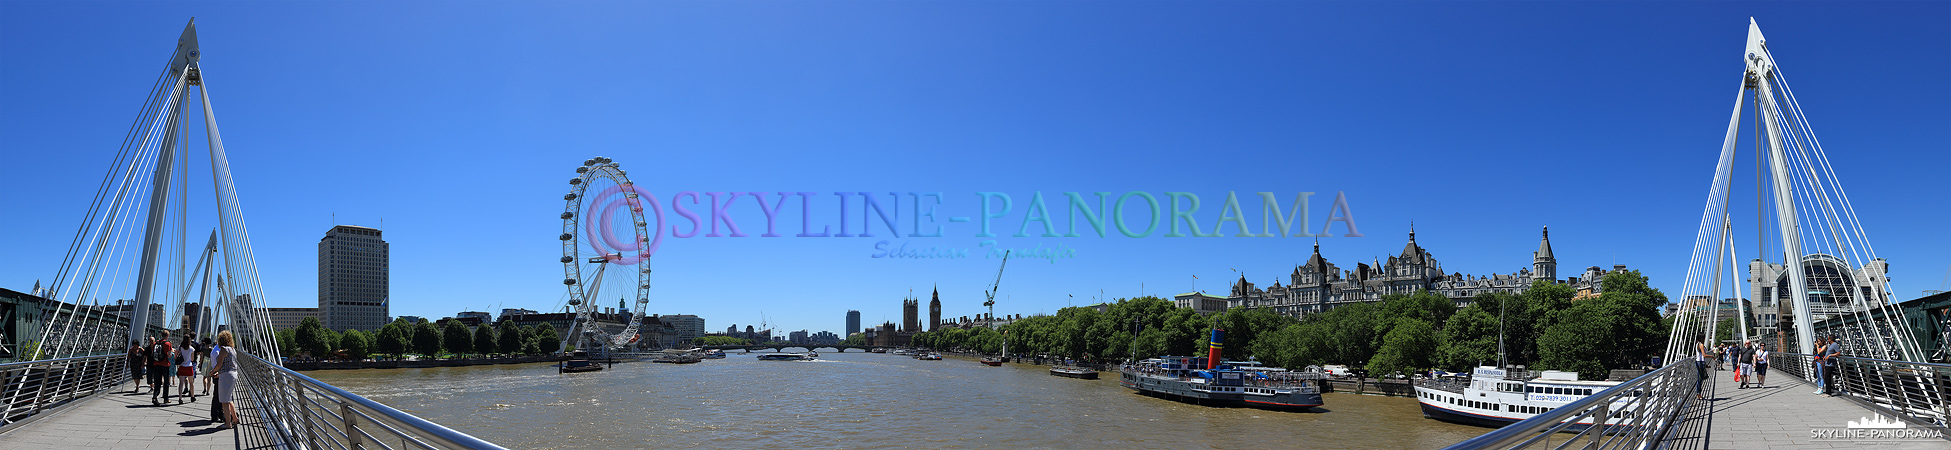 Bilder aus London - Das Panorama von der Hungerfort Bridge in Richtung London Eye und Westminster Palace mit Big Ben.